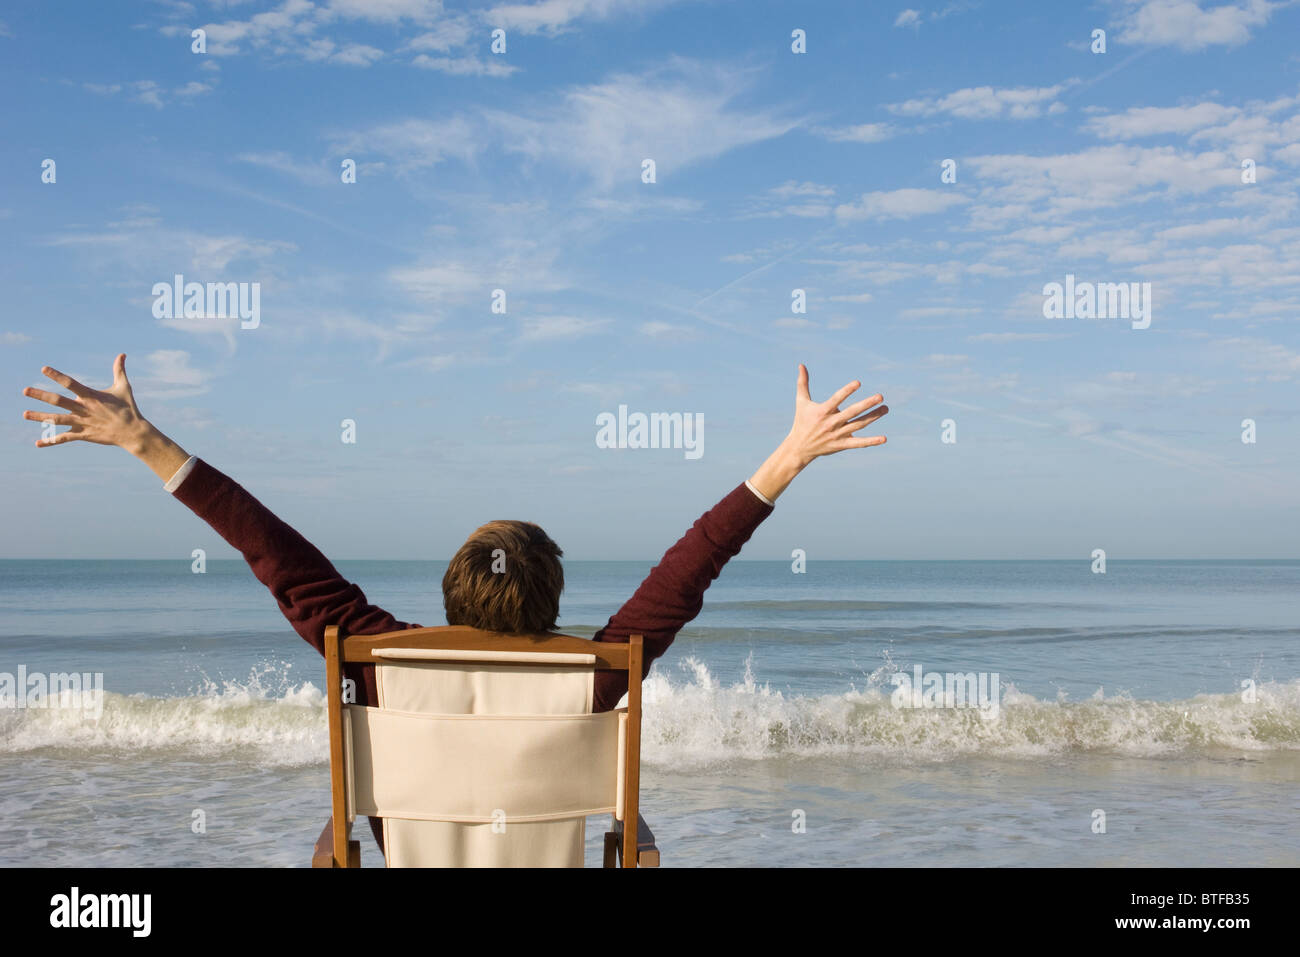 Young man sitting in chair on beach with arms raised, rear view - Stock Image